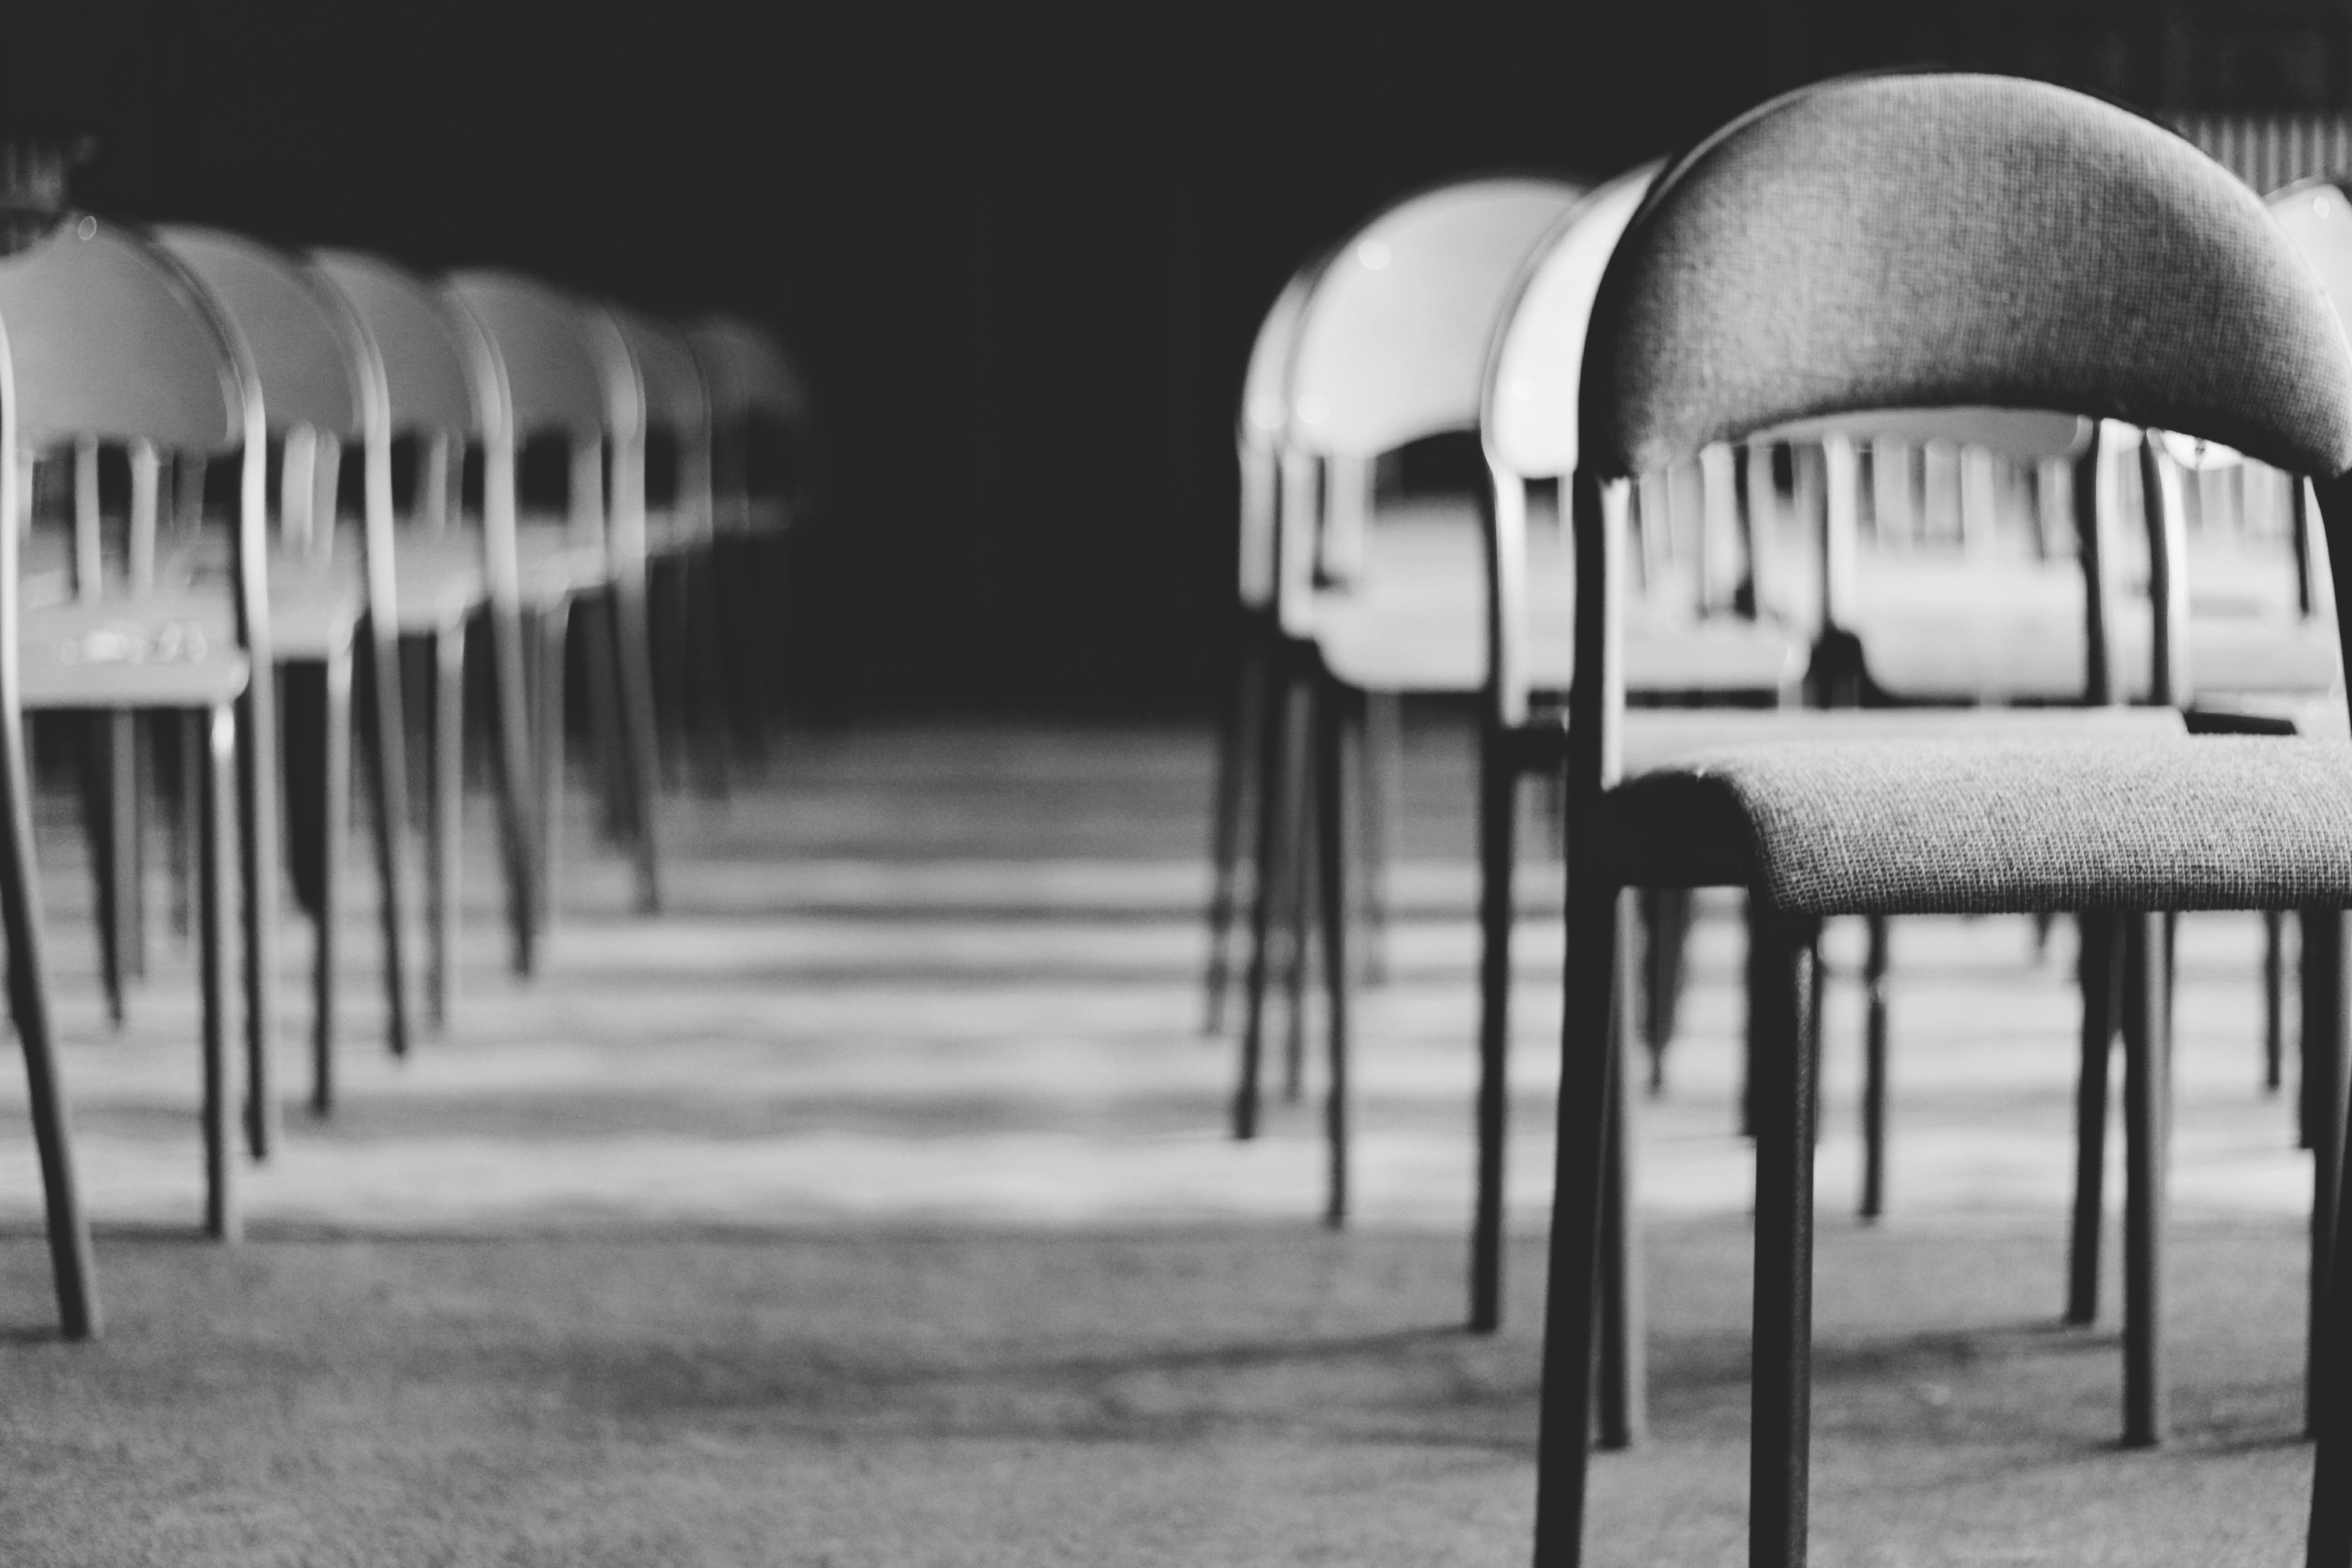 Grayscale Photo of Empty Folding Chairs